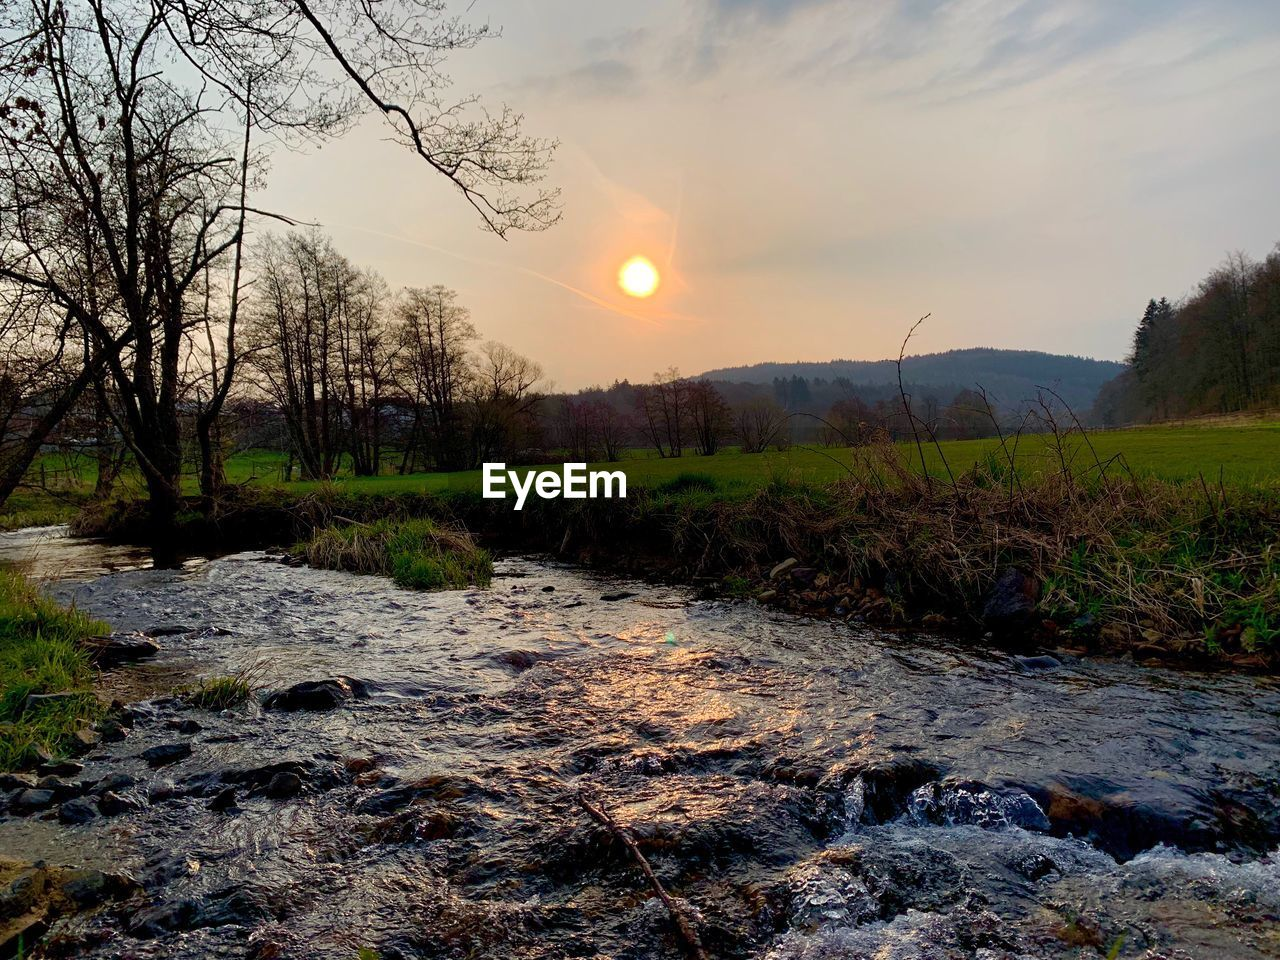 sky, water, scenics - nature, sunset, tranquil scene, beauty in nature, tree, tranquility, nature, plant, sun, no people, land, non-urban scene, cloud - sky, river, environment, landscape, rock, outdoors, flowing water, stream - flowing water, lens flare, flowing